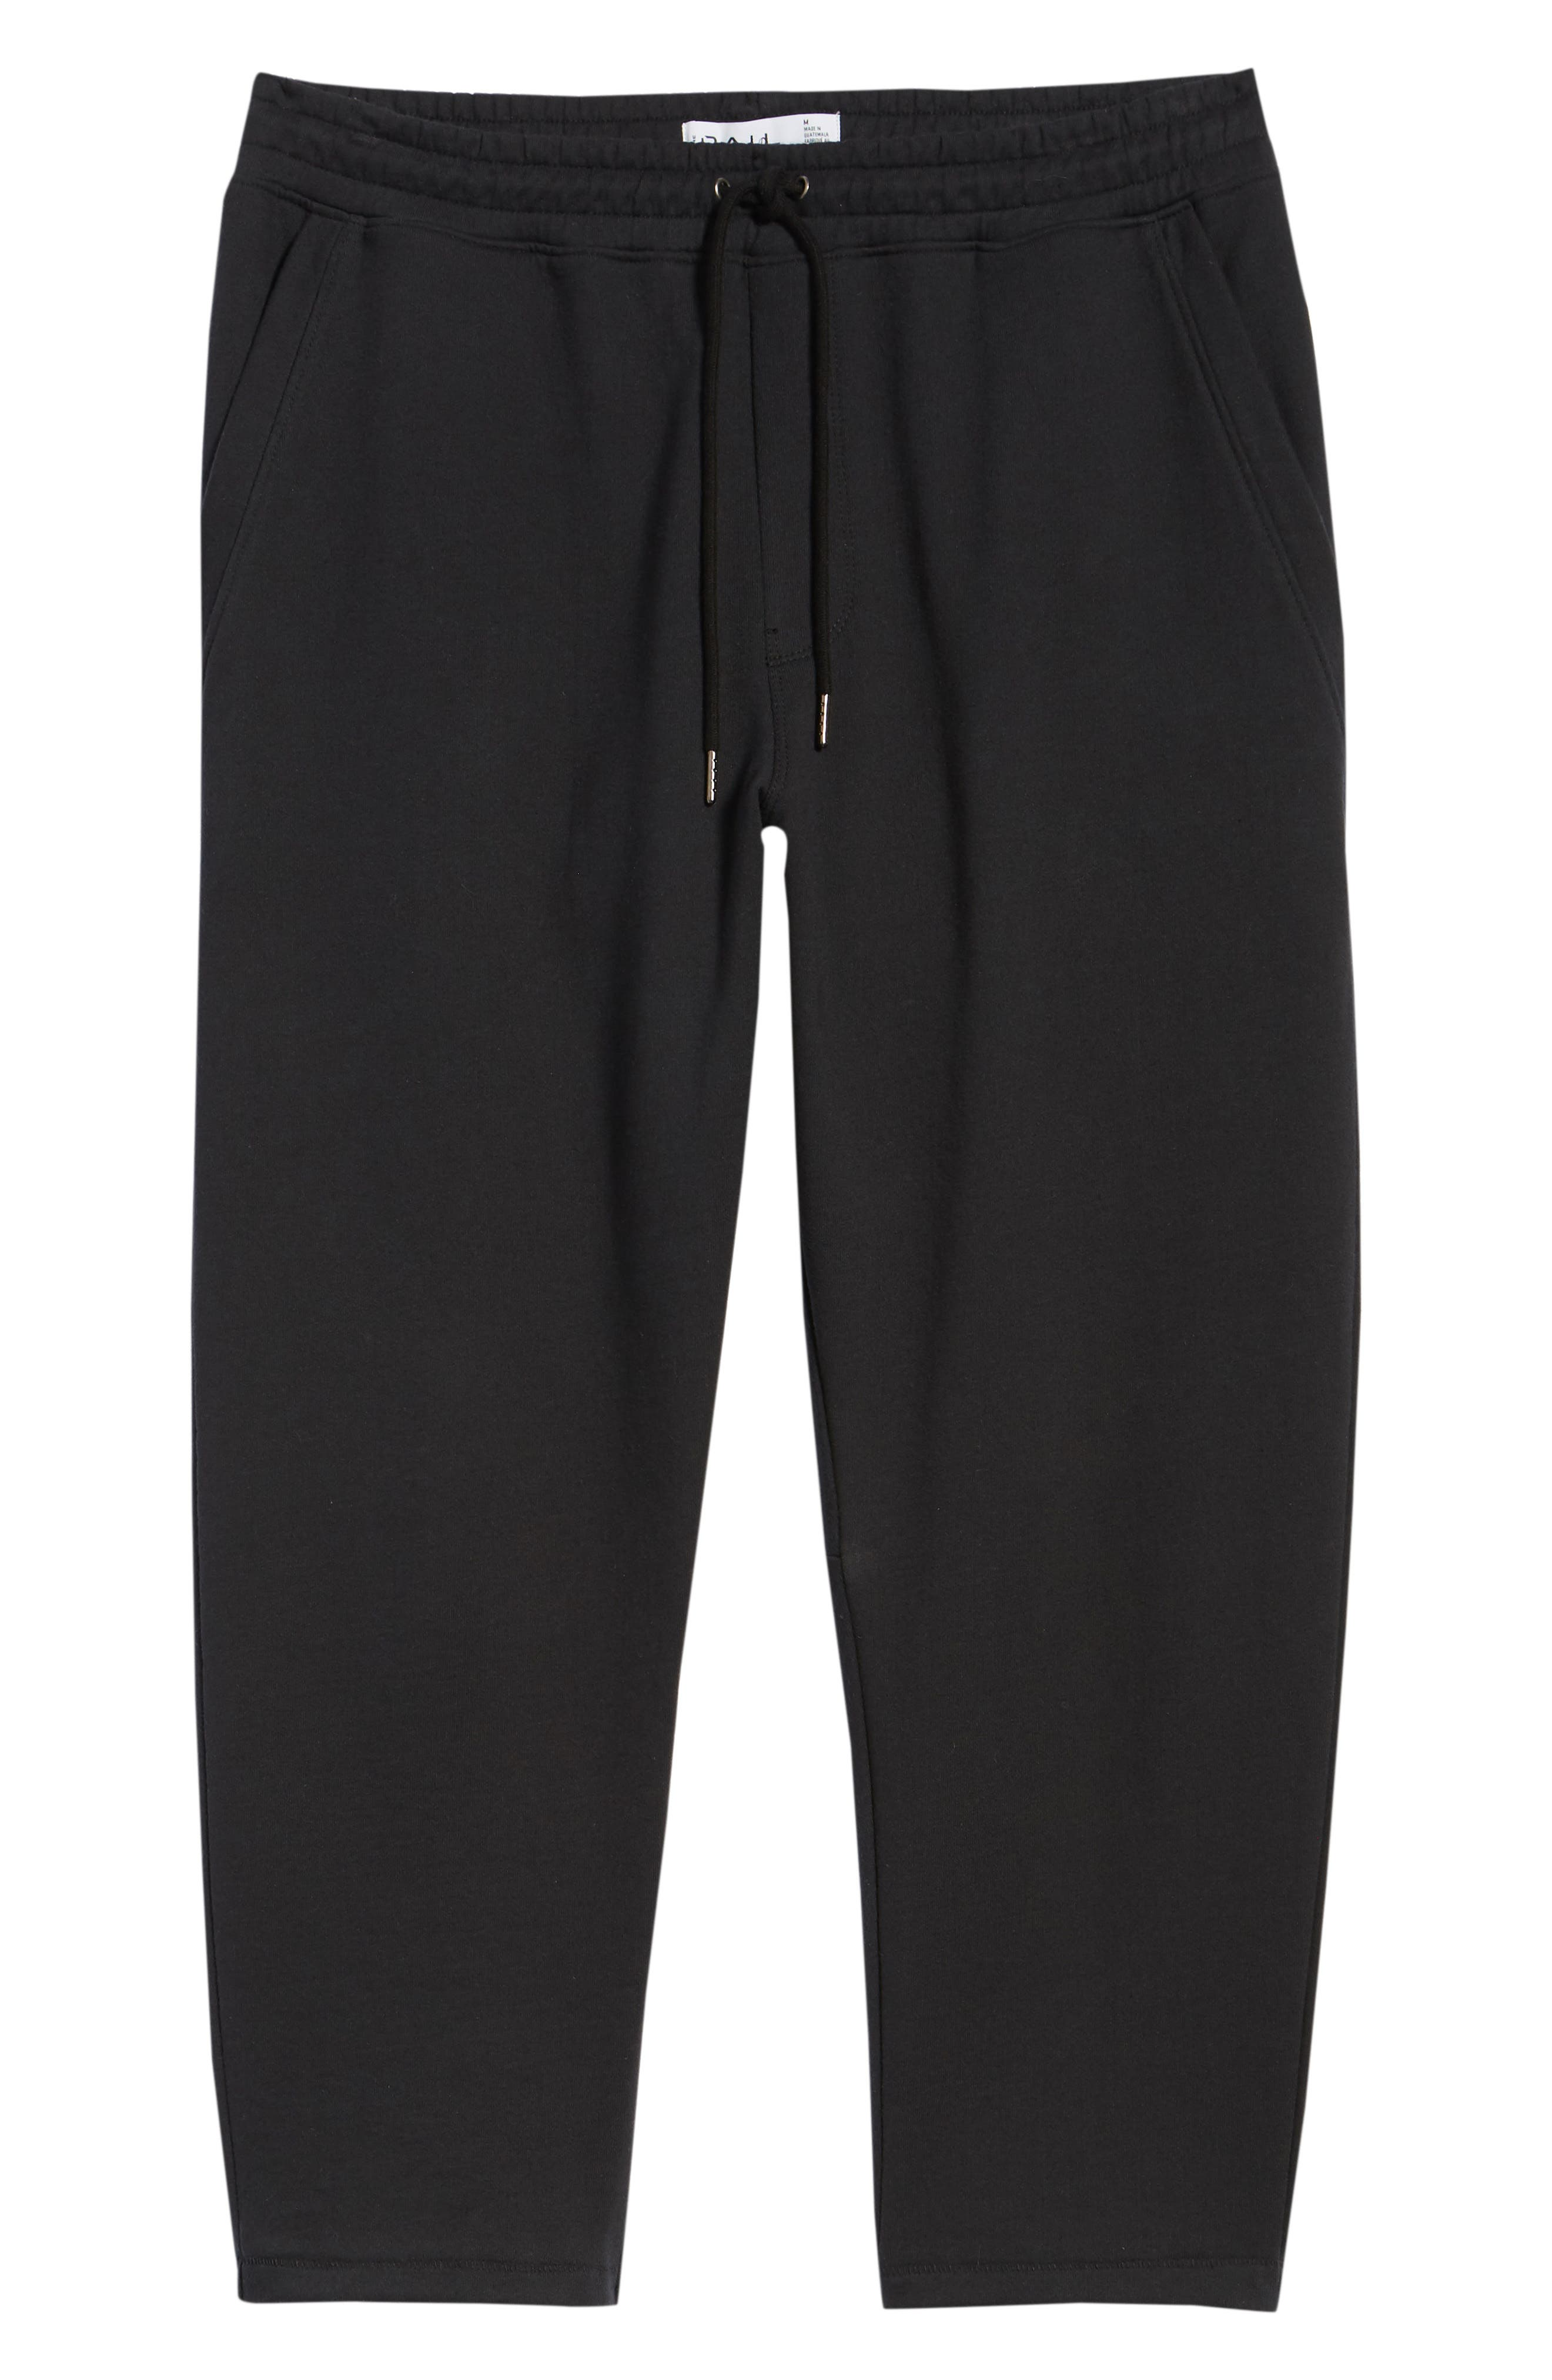 Cropped Sweatpants,                             Alternate thumbnail 6, color,                             Black Rock